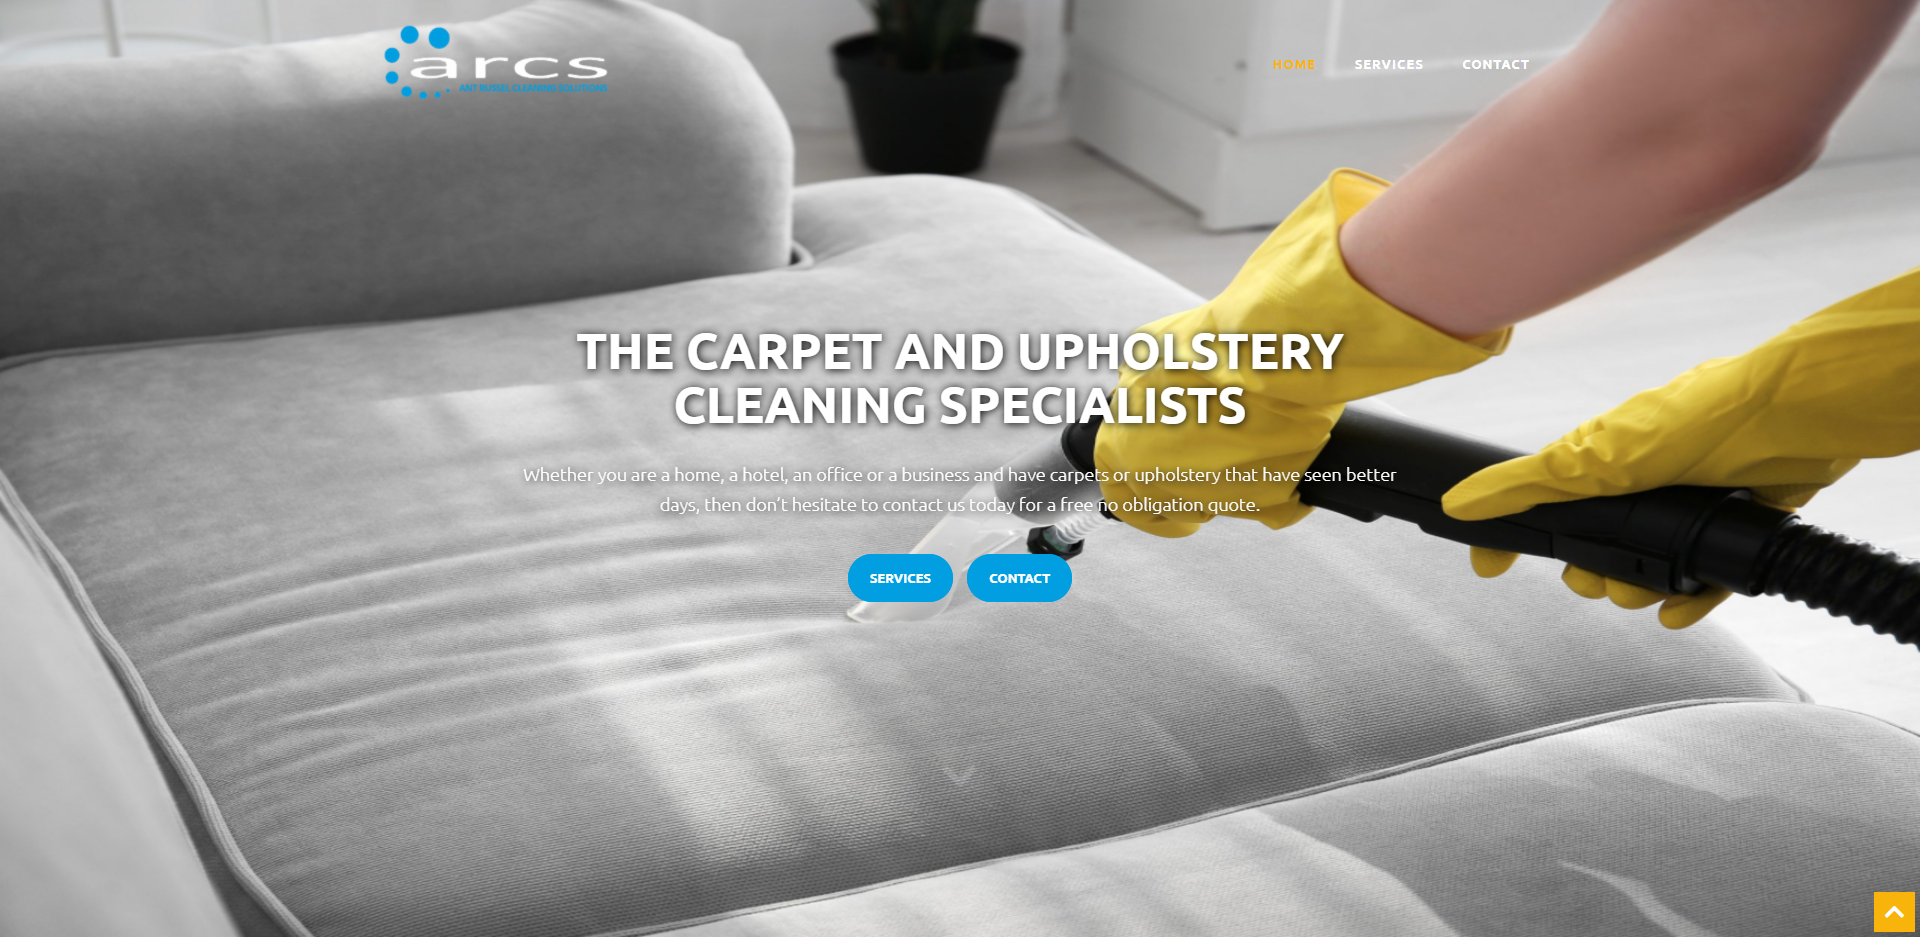 ARCS Anthony Russell Cleaning Services